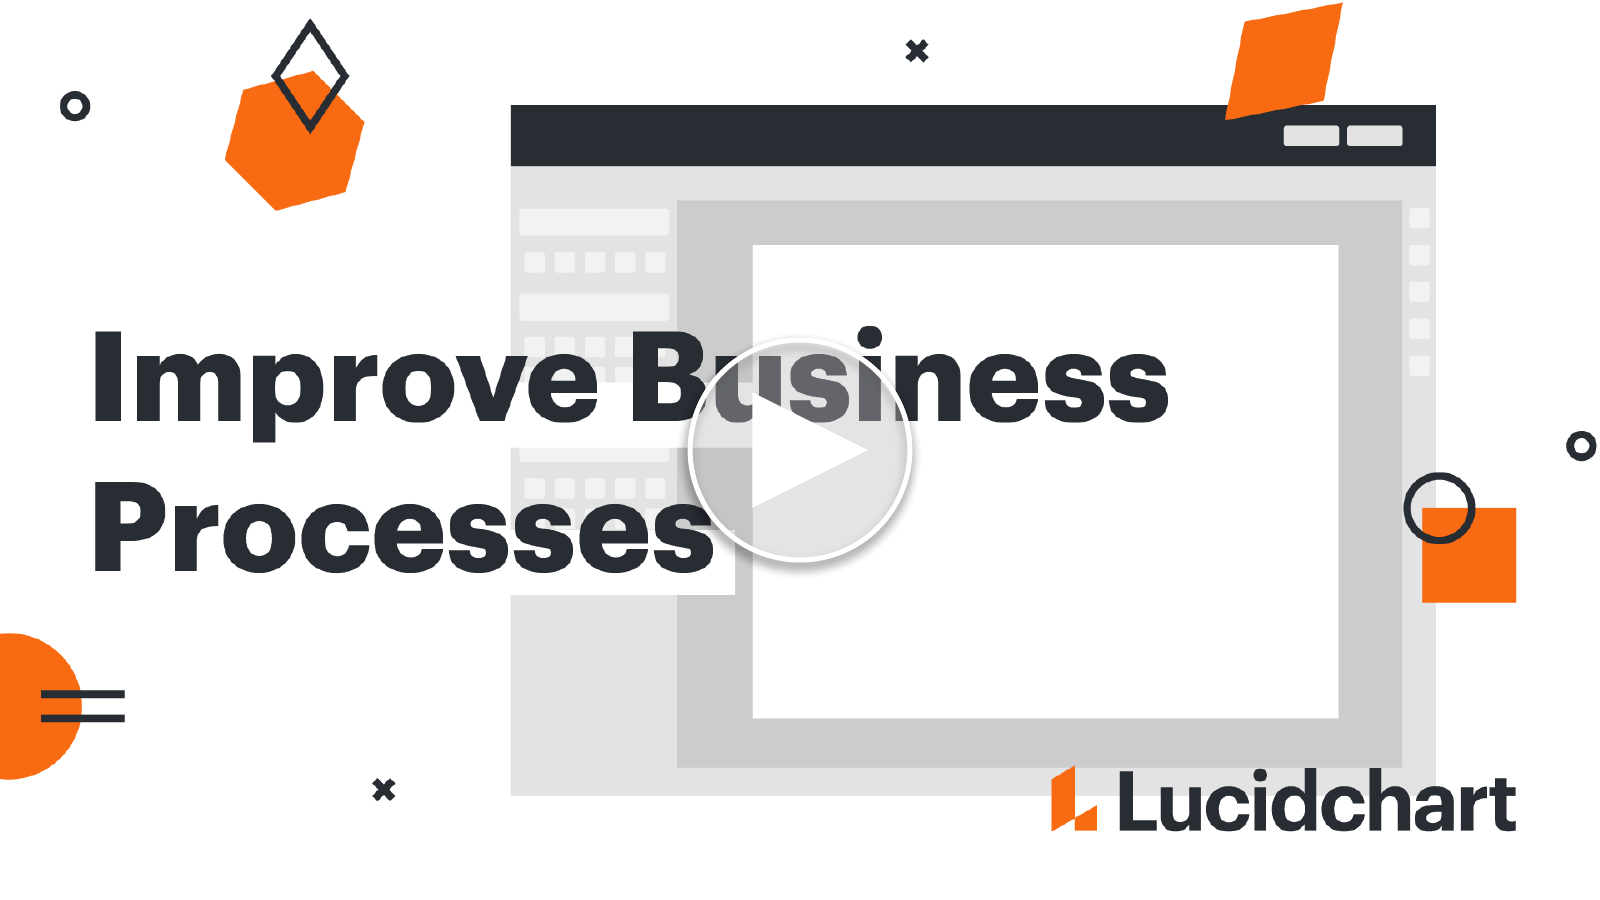 How Lucidchart can help you visualize your business processes